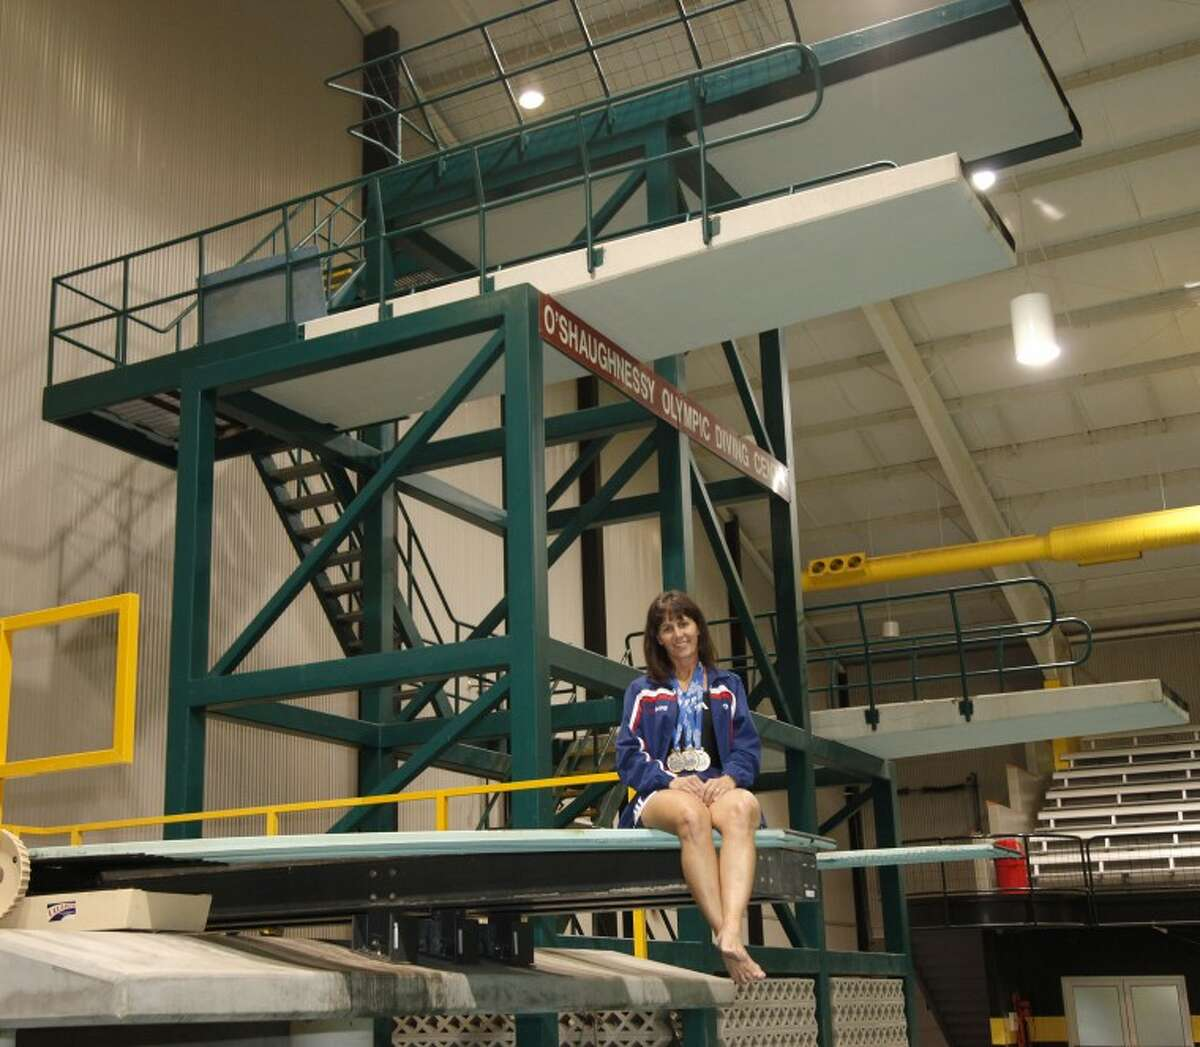 Jennifer Mangum, Midland ISD's head diving and swimming coach, competes at the masters level. The 3-meter dive is her favorite event.